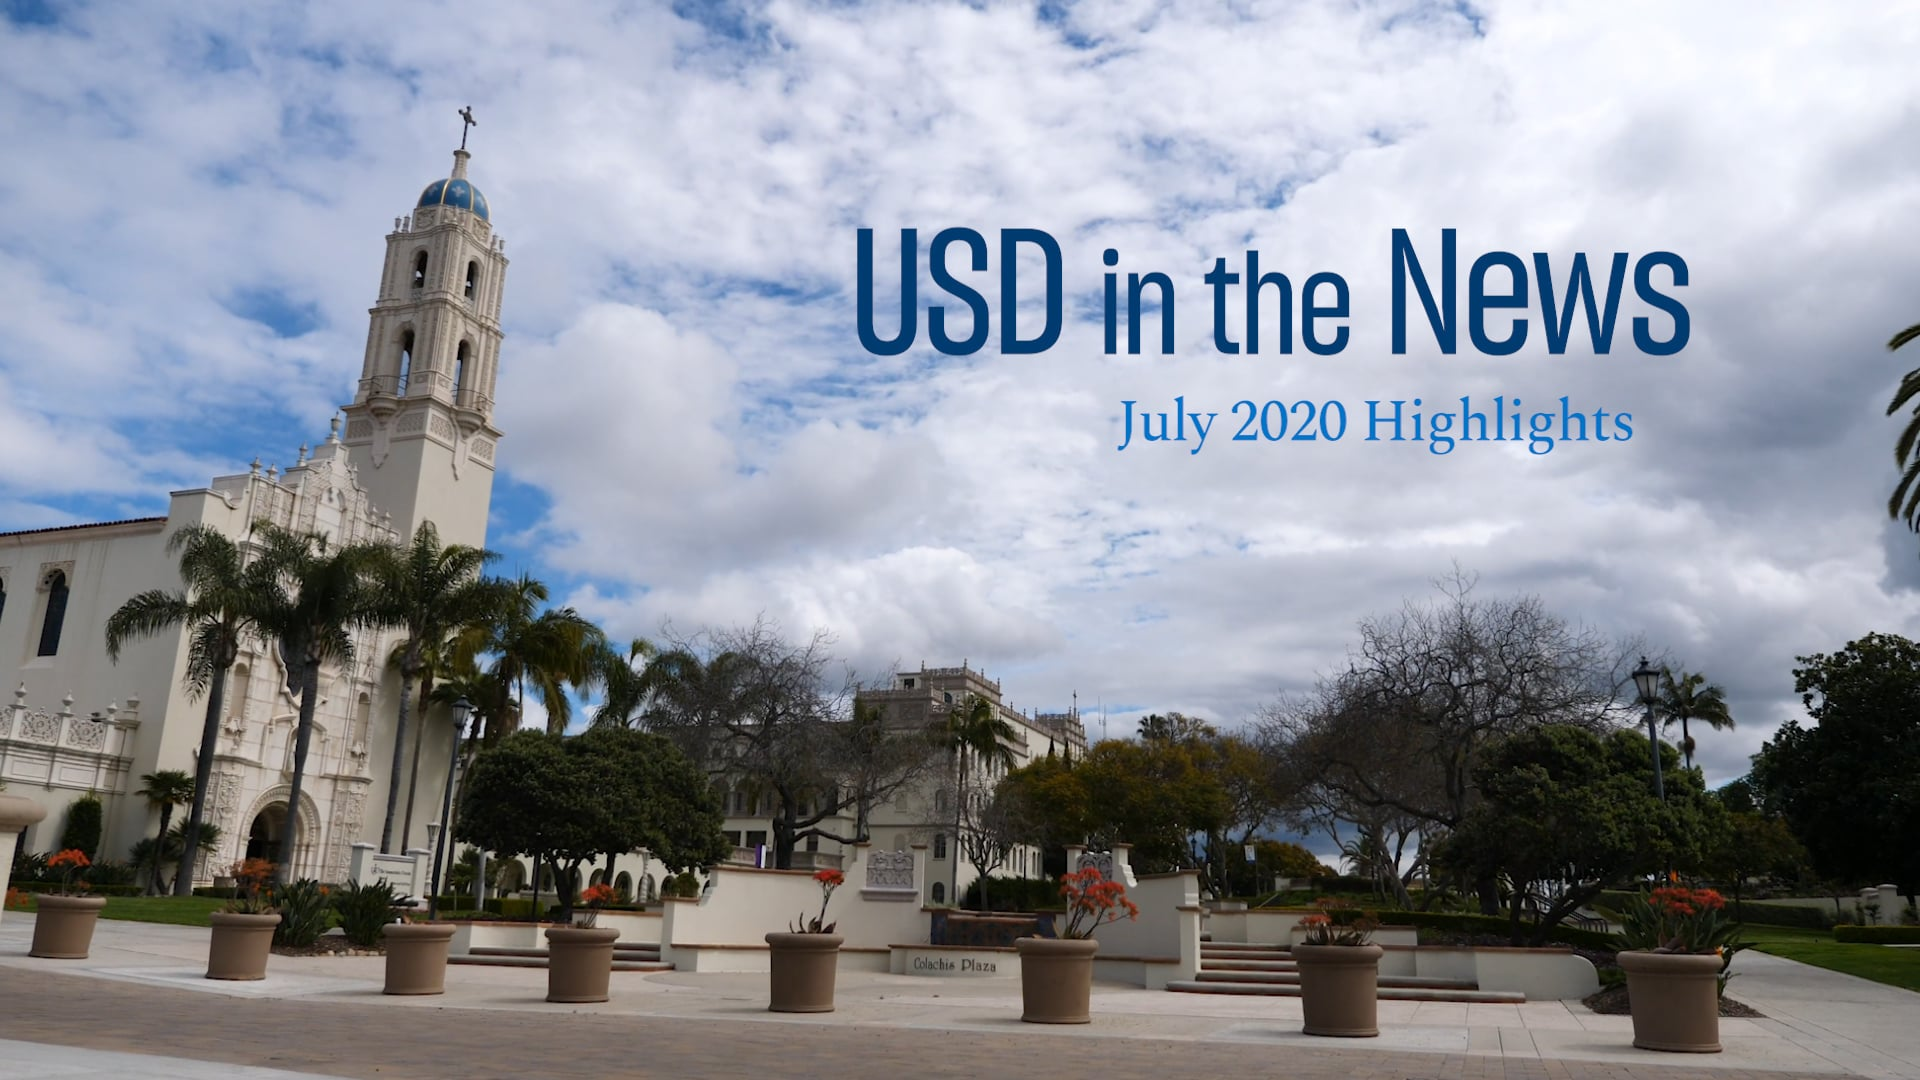 USD in the News - July 2020